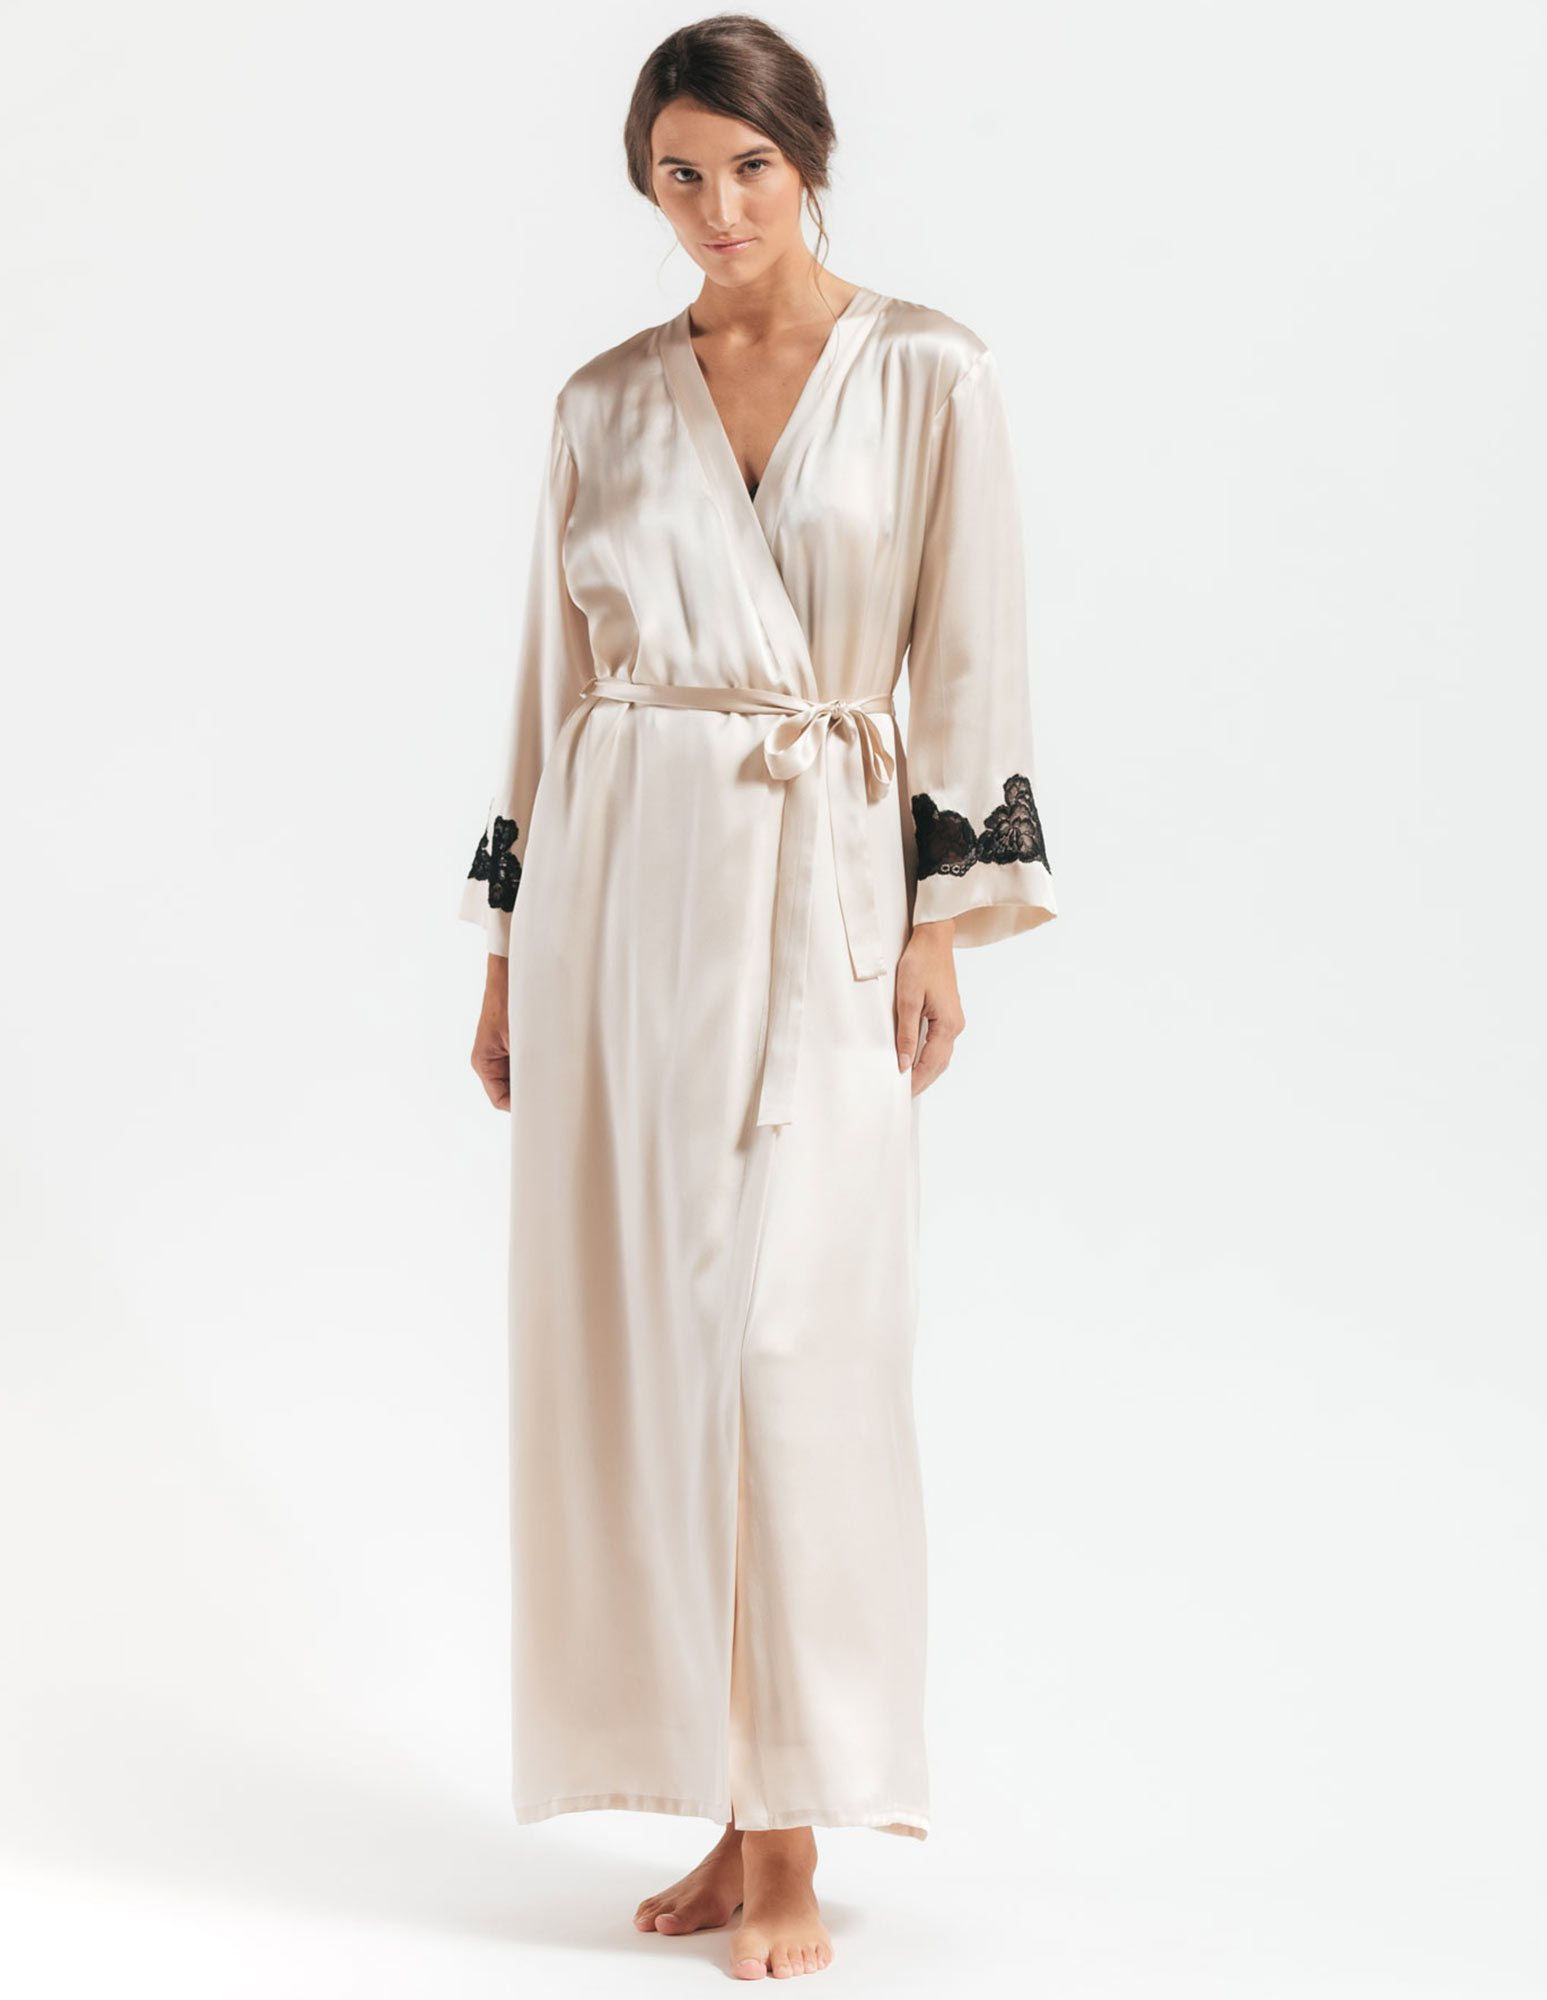 23. Morgan Long Robe $300. S-L. Champagne (shown), all black, or all ivory.